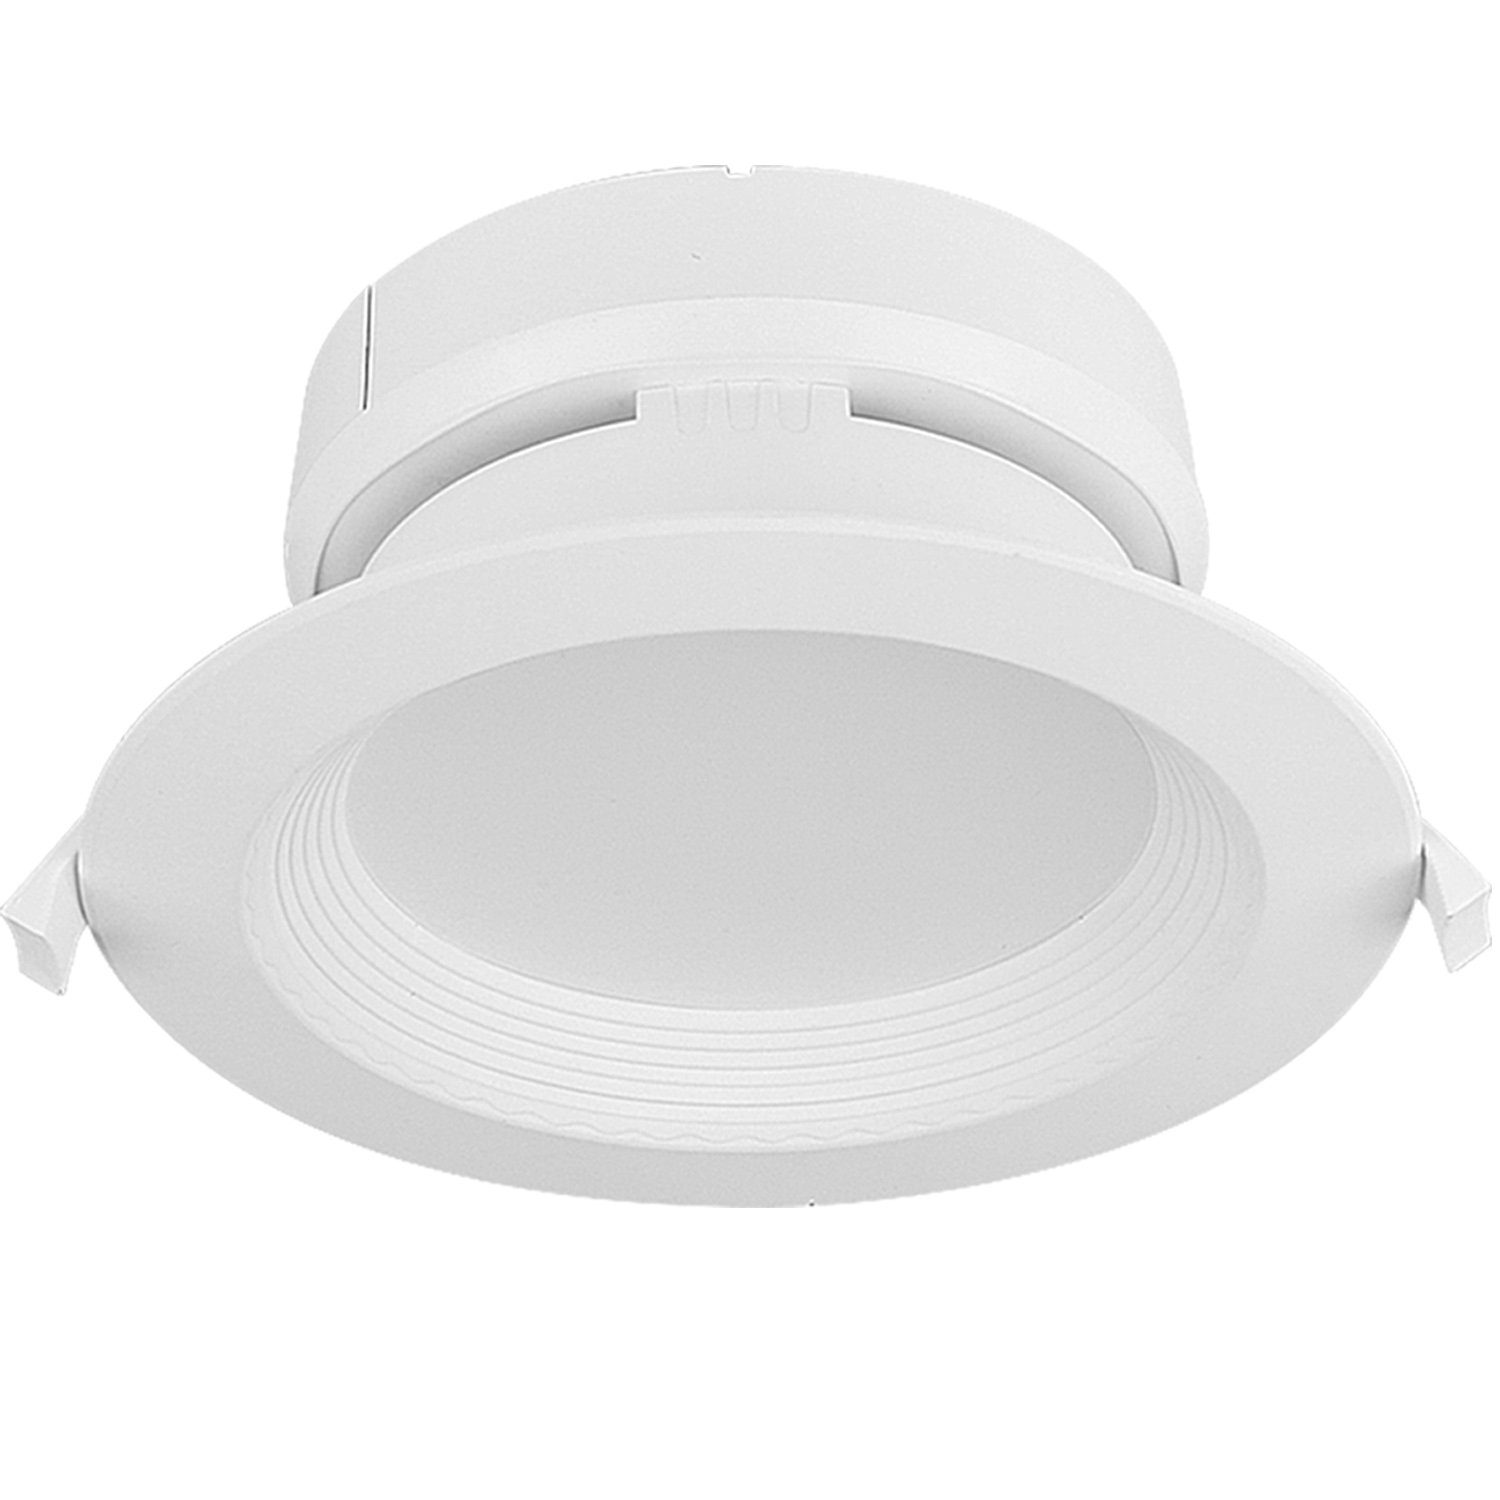 hykolity 6 Inch LED Recessed Downlight Dimmable Baffle Trim Ceiling Light Fixture with Junction Box 15W [105W Equivalent] 4000K Neutral White 1500lm Wet Rated ETL Listed - Pack of 4